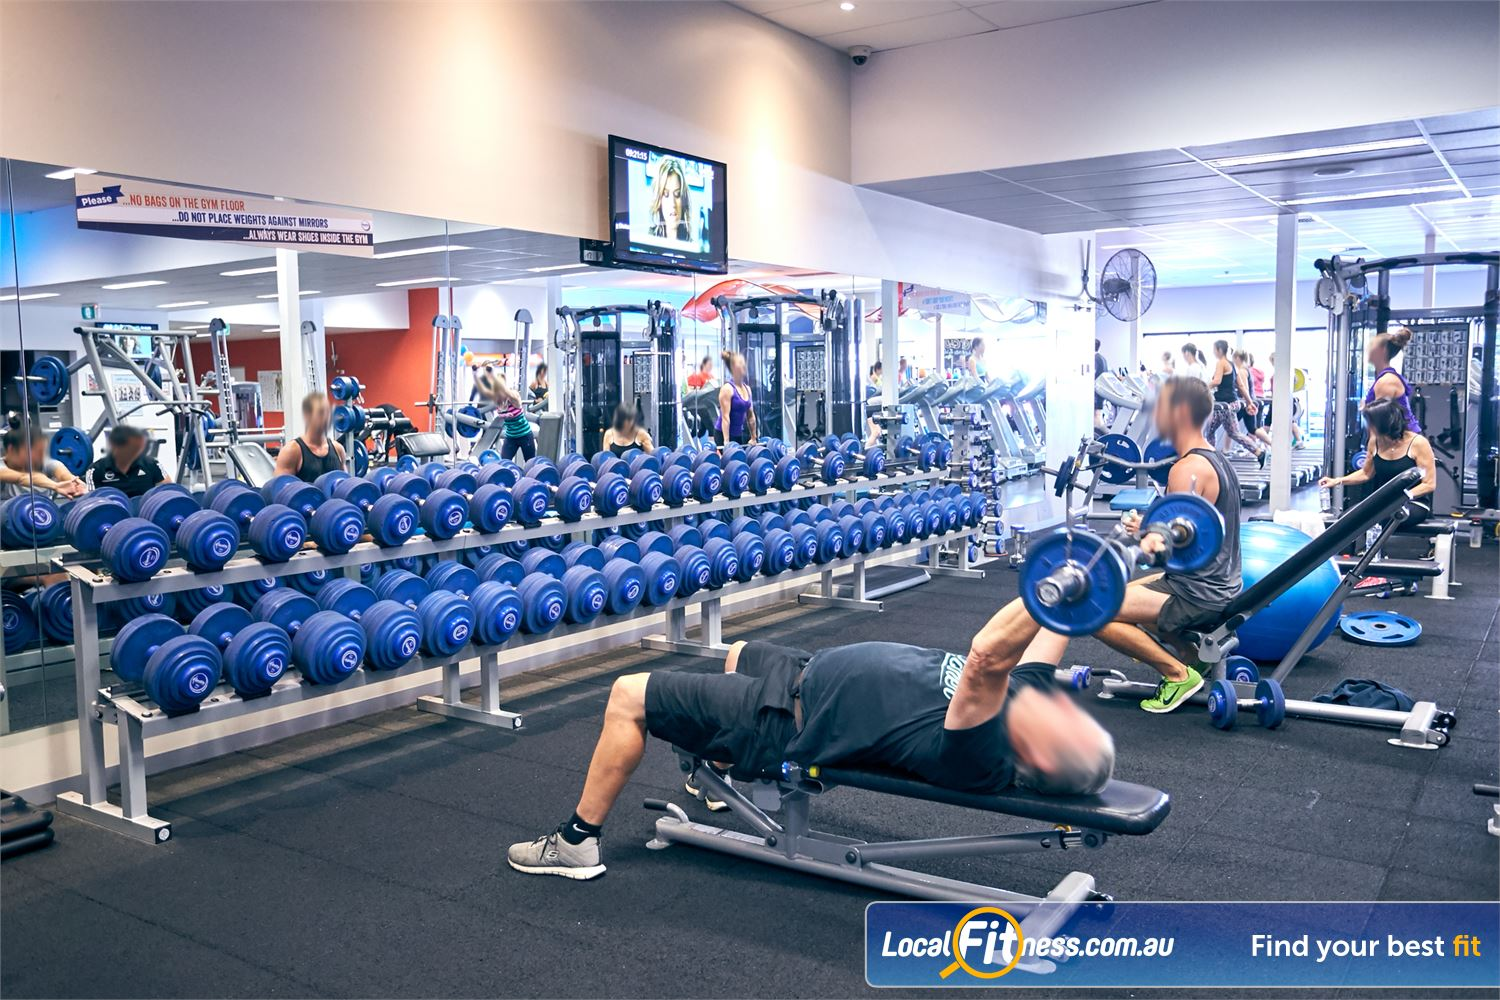 Goodlife Health Clubs Cross Roads Near Hawthorn Our Cross Roads gym includes a comprehensive free-weights area.